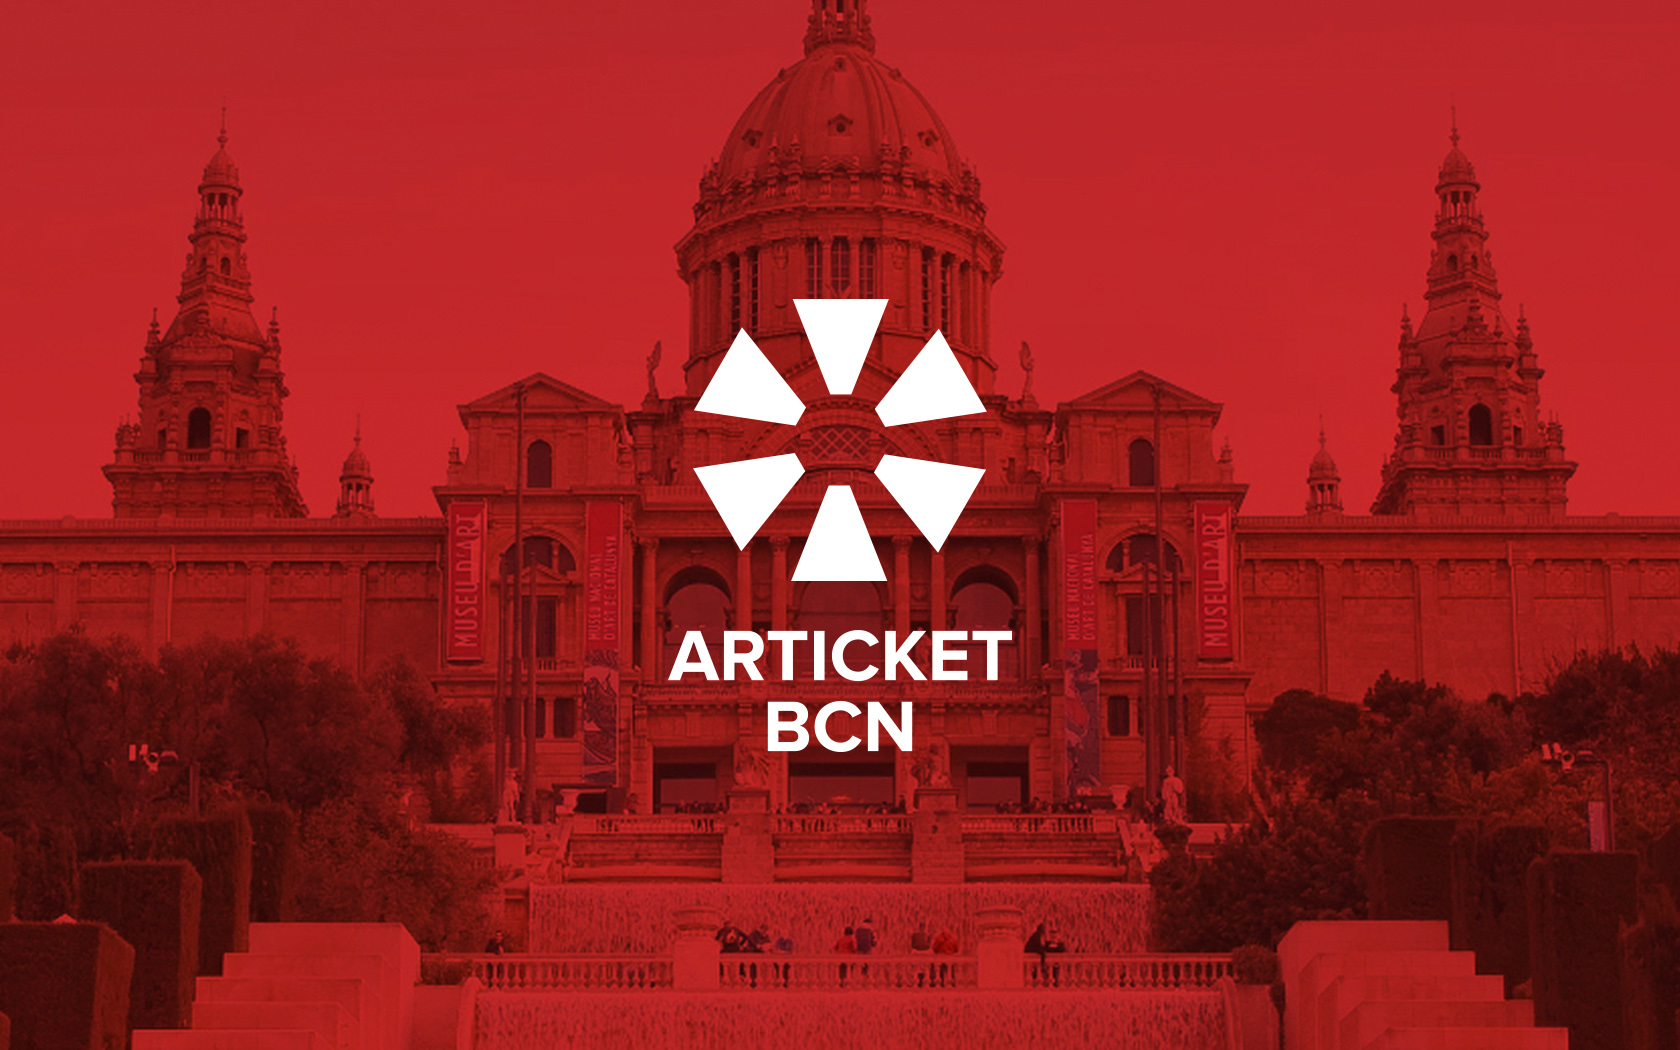 ARTICKET BCN. LOGOTIP